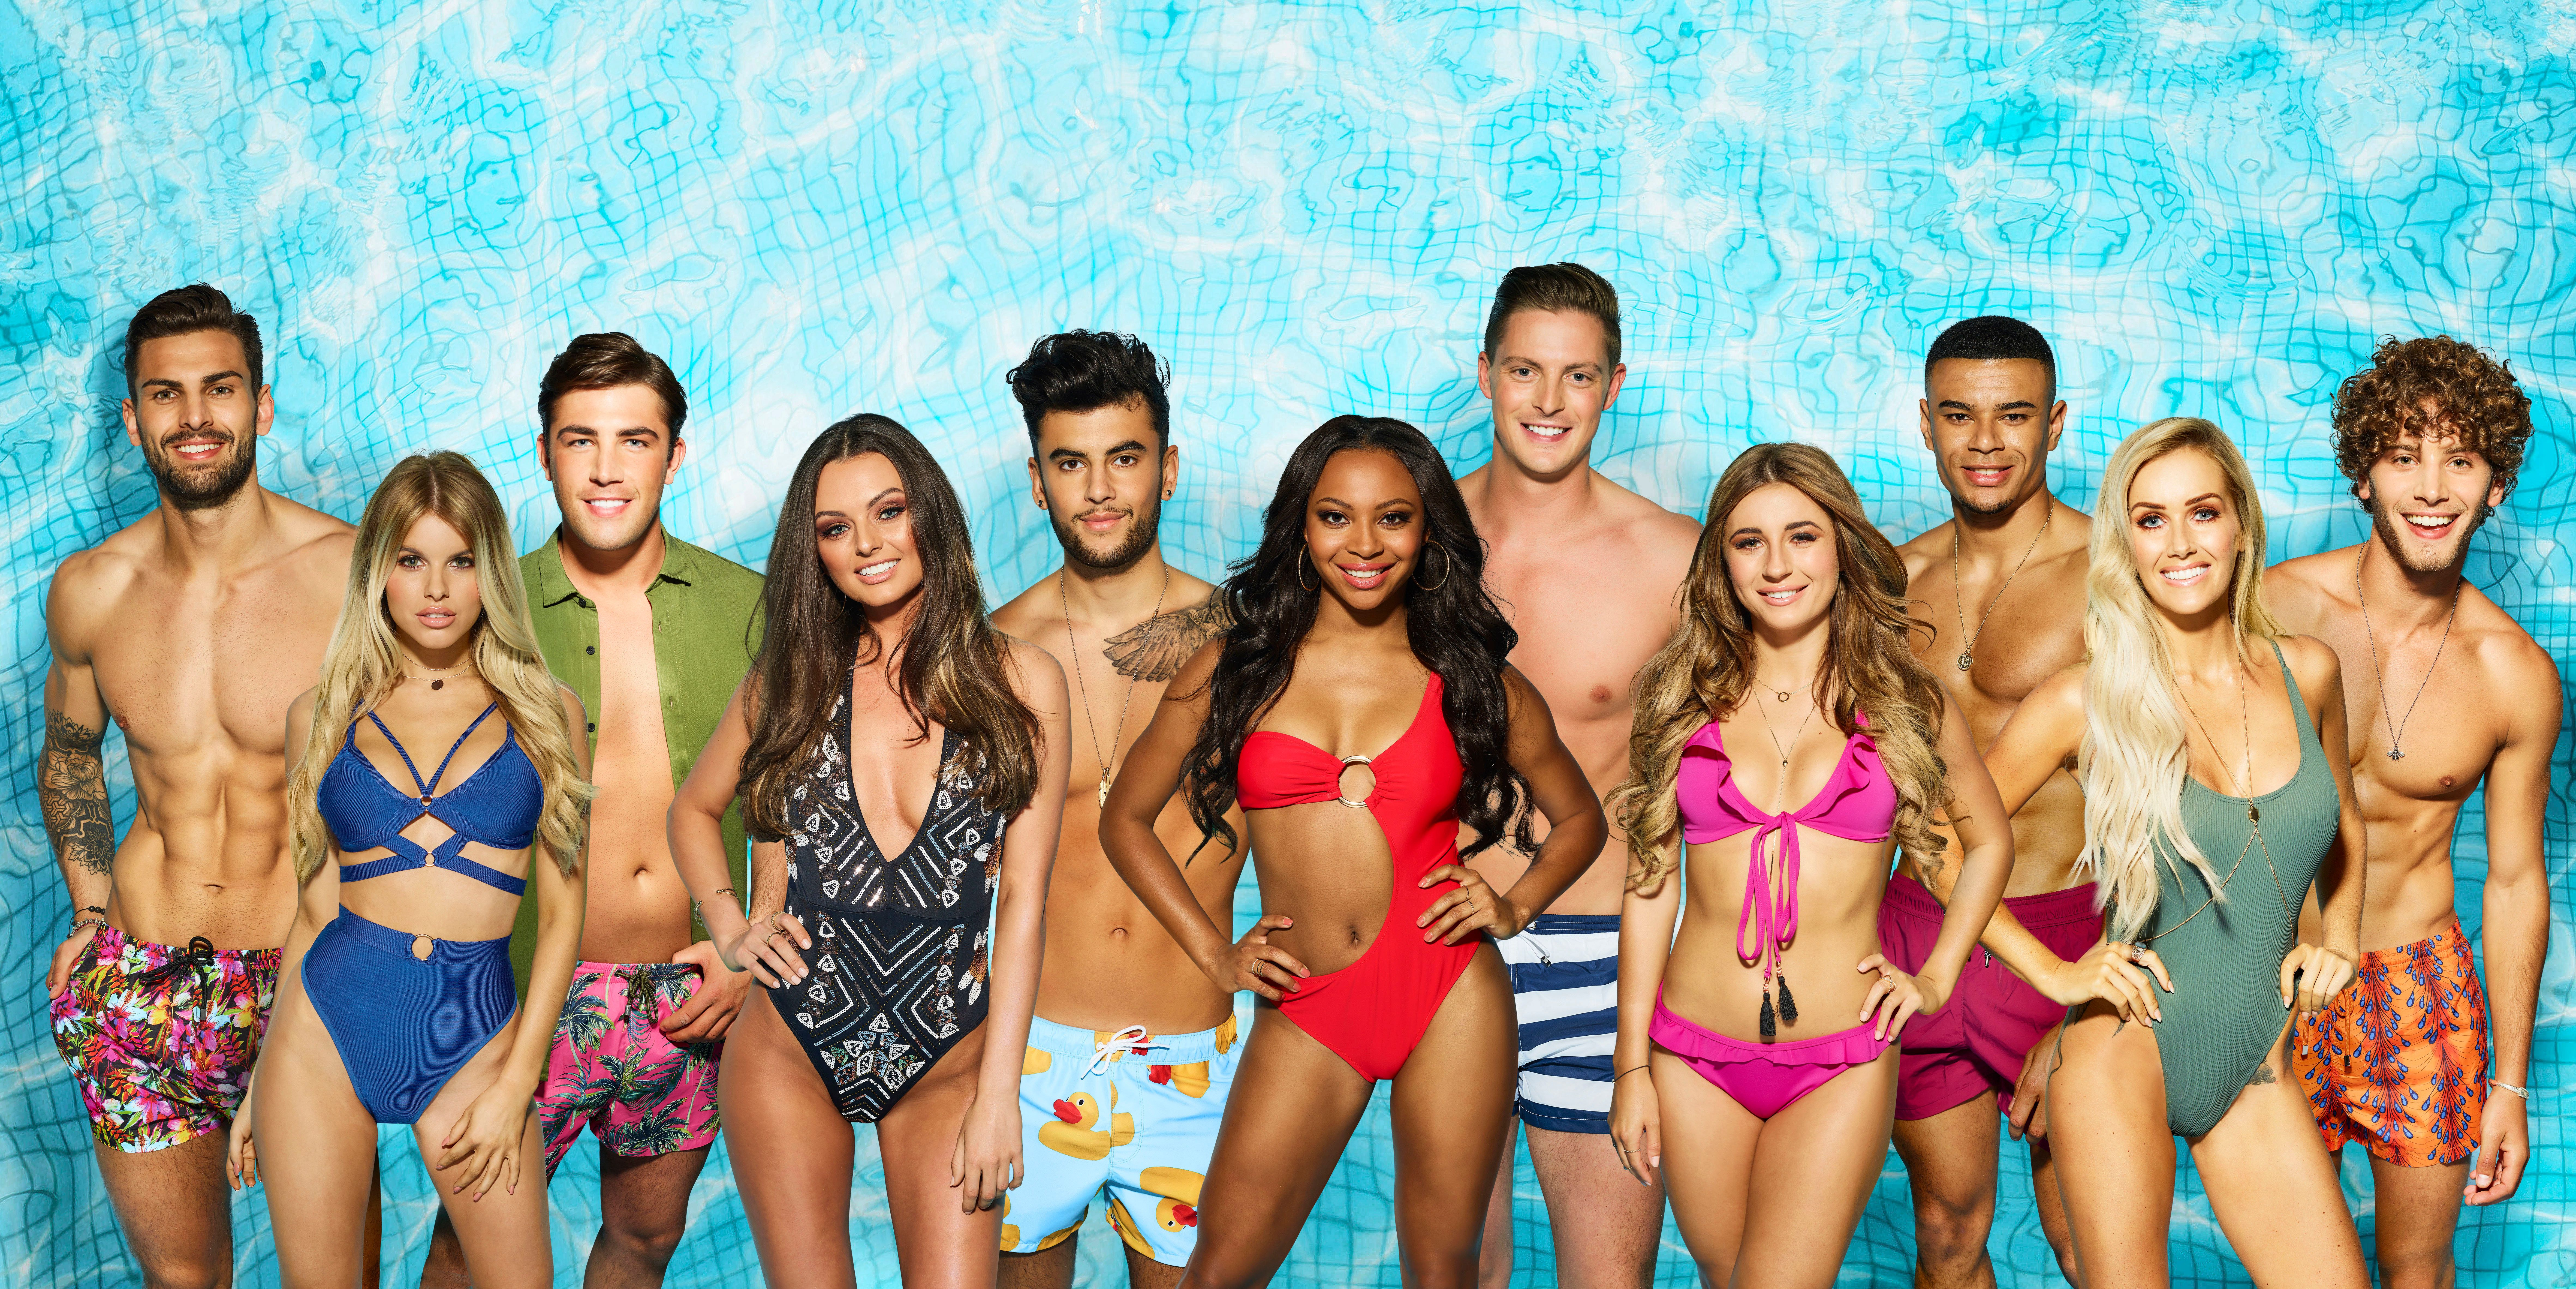 The new 'Love Island' line-up